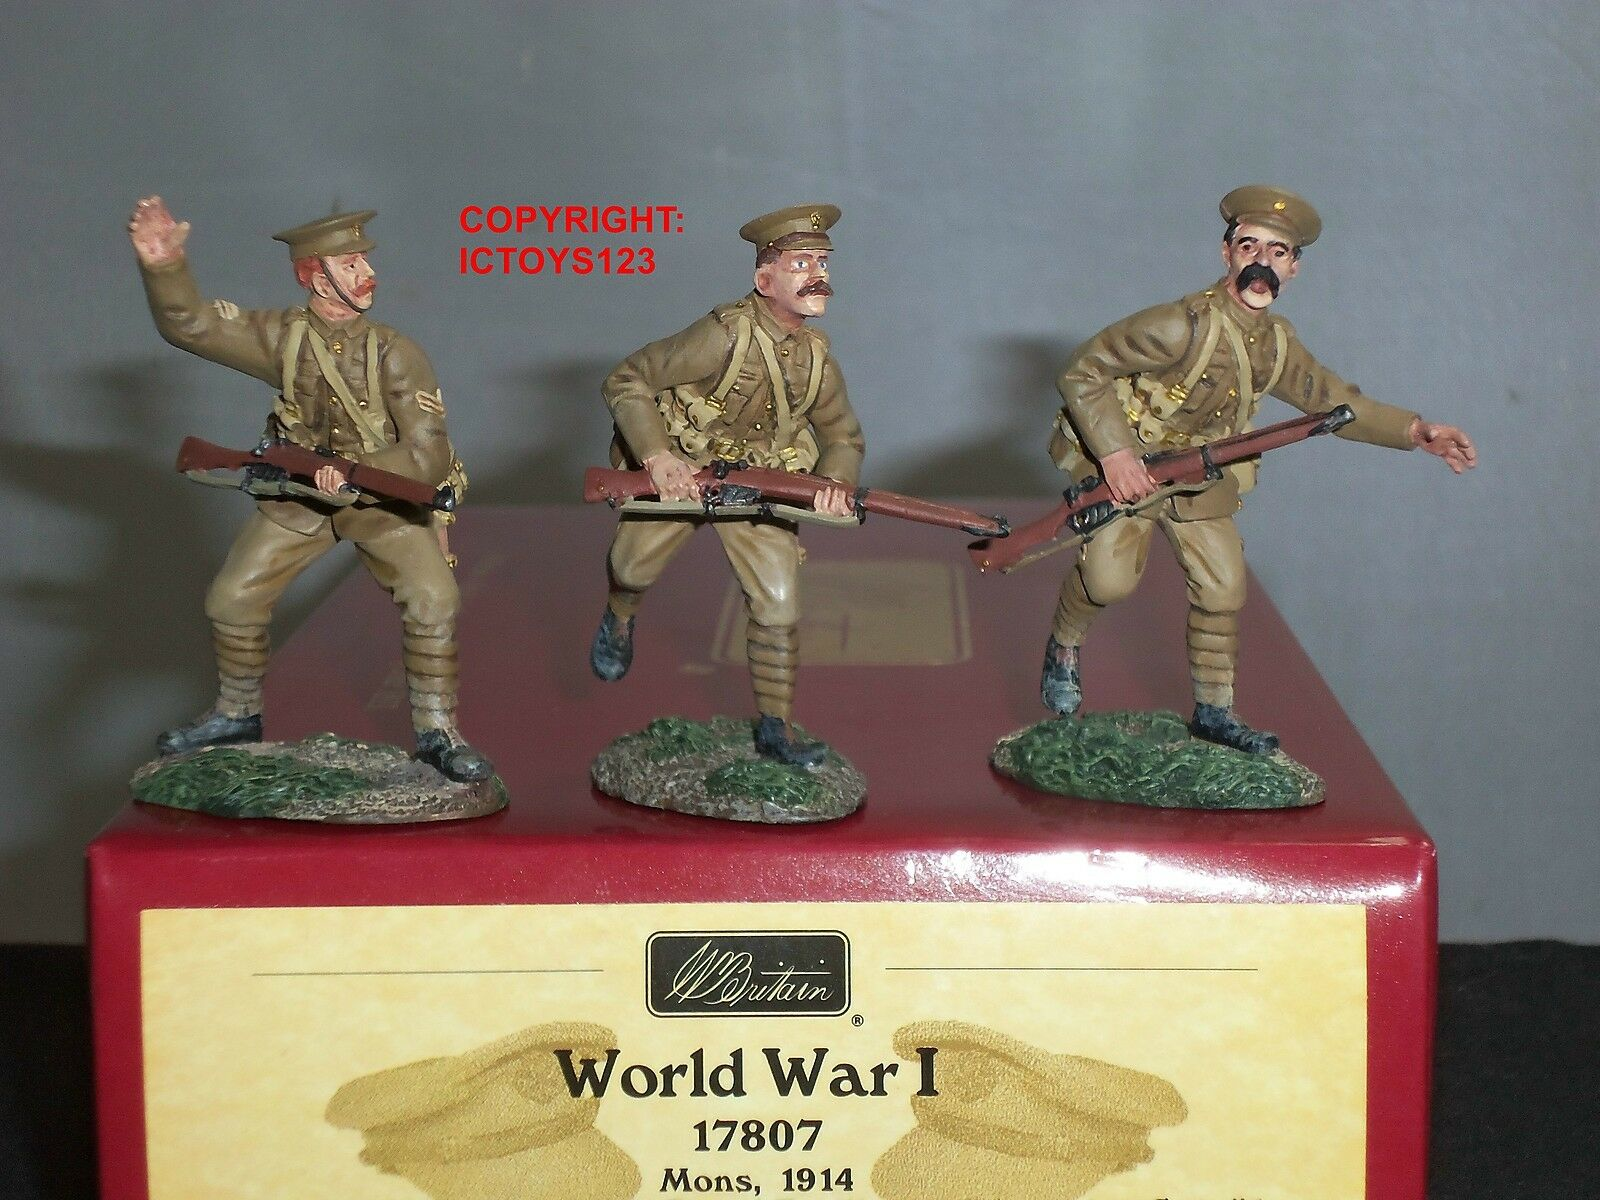 BRITAINS 17807 WORLD WAR ONE BRITISH 1ST ROYAL FUSILIERS ADVANCING FIGURE SET